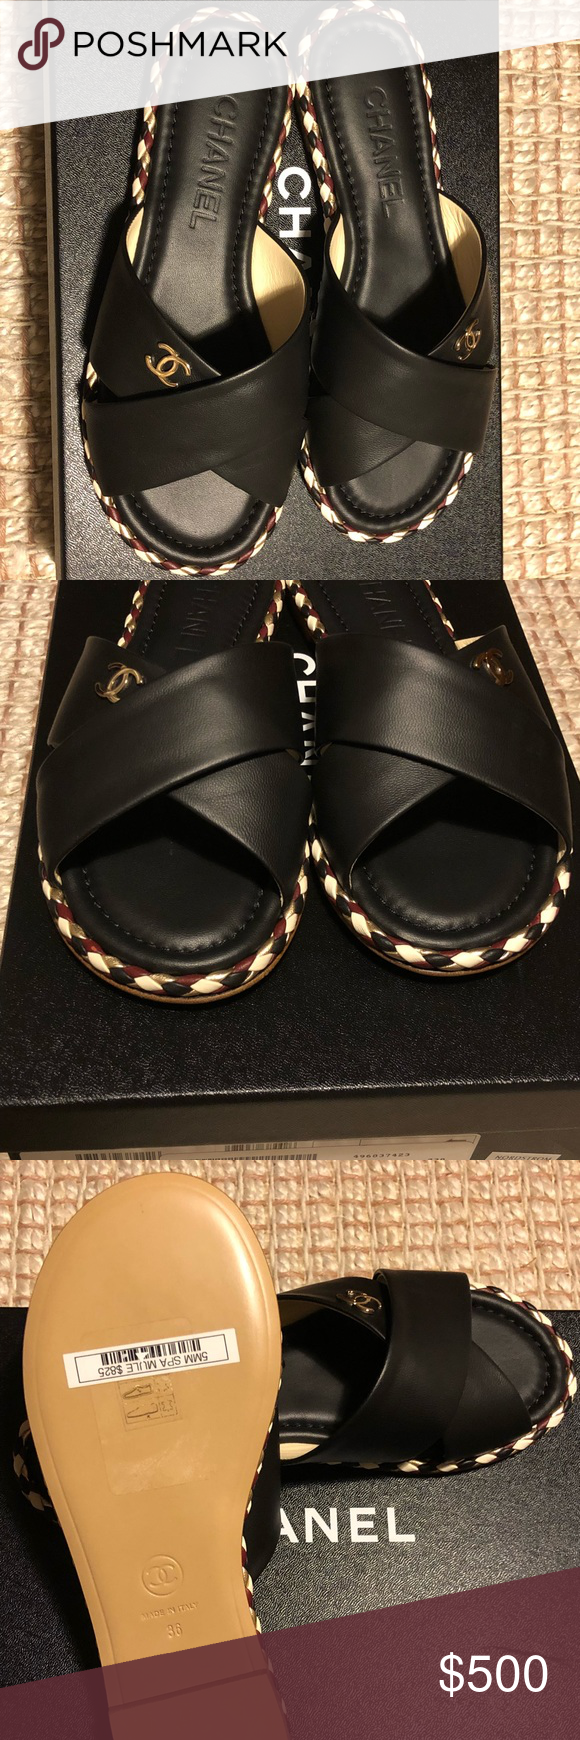 5c989625bc570 Chanel spa mule slides Black Chanel sandals, with burgundy, gold and cream  braided edge